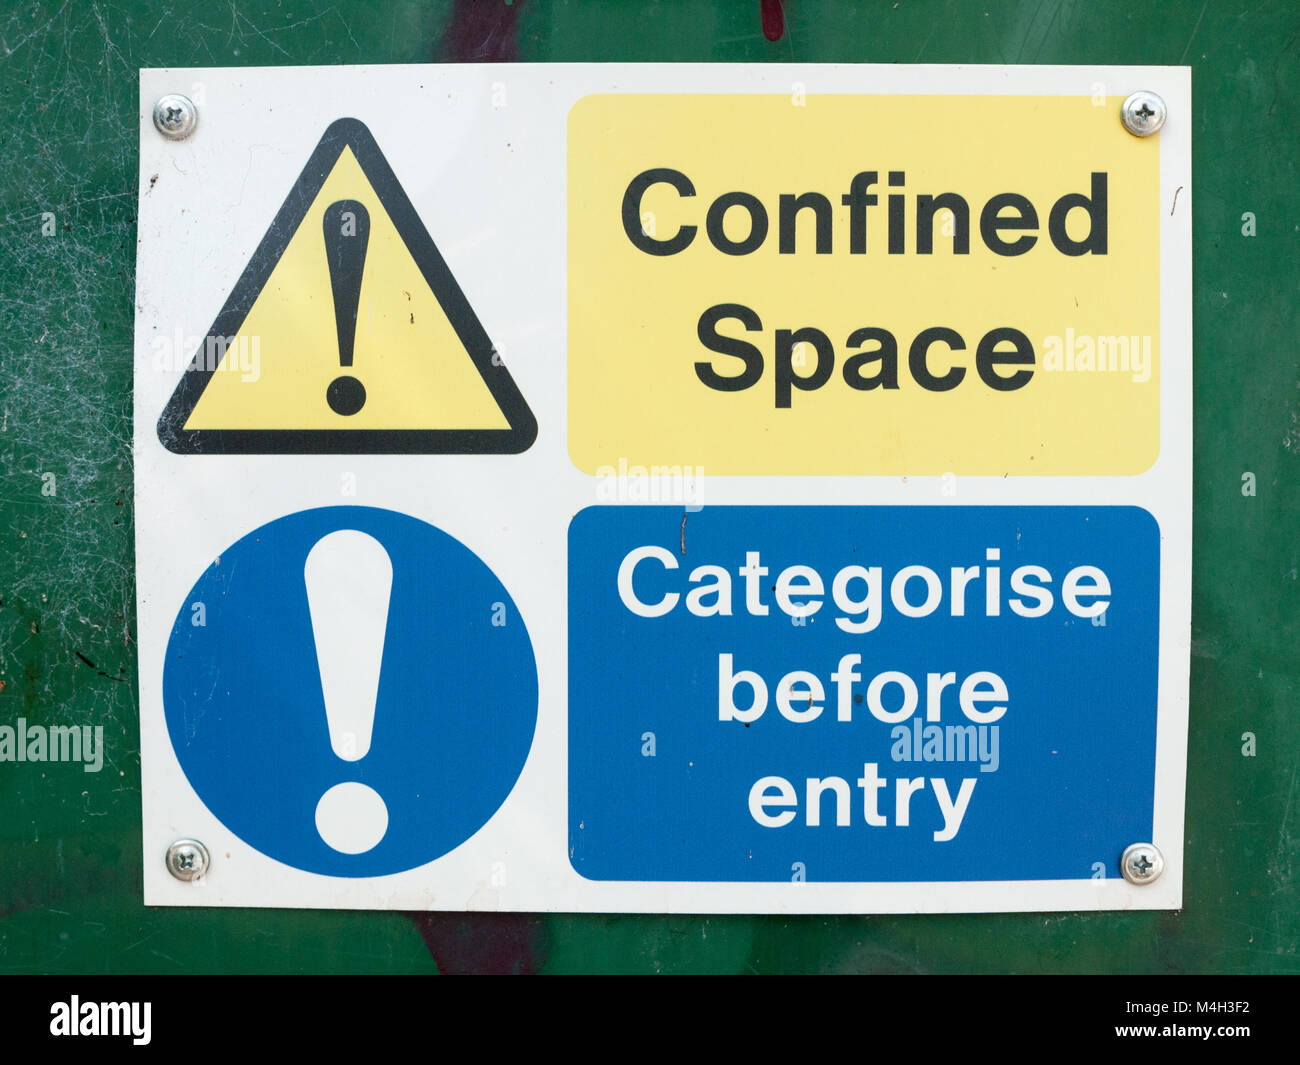 confined space categorise before entry sign board on box - Stock Image